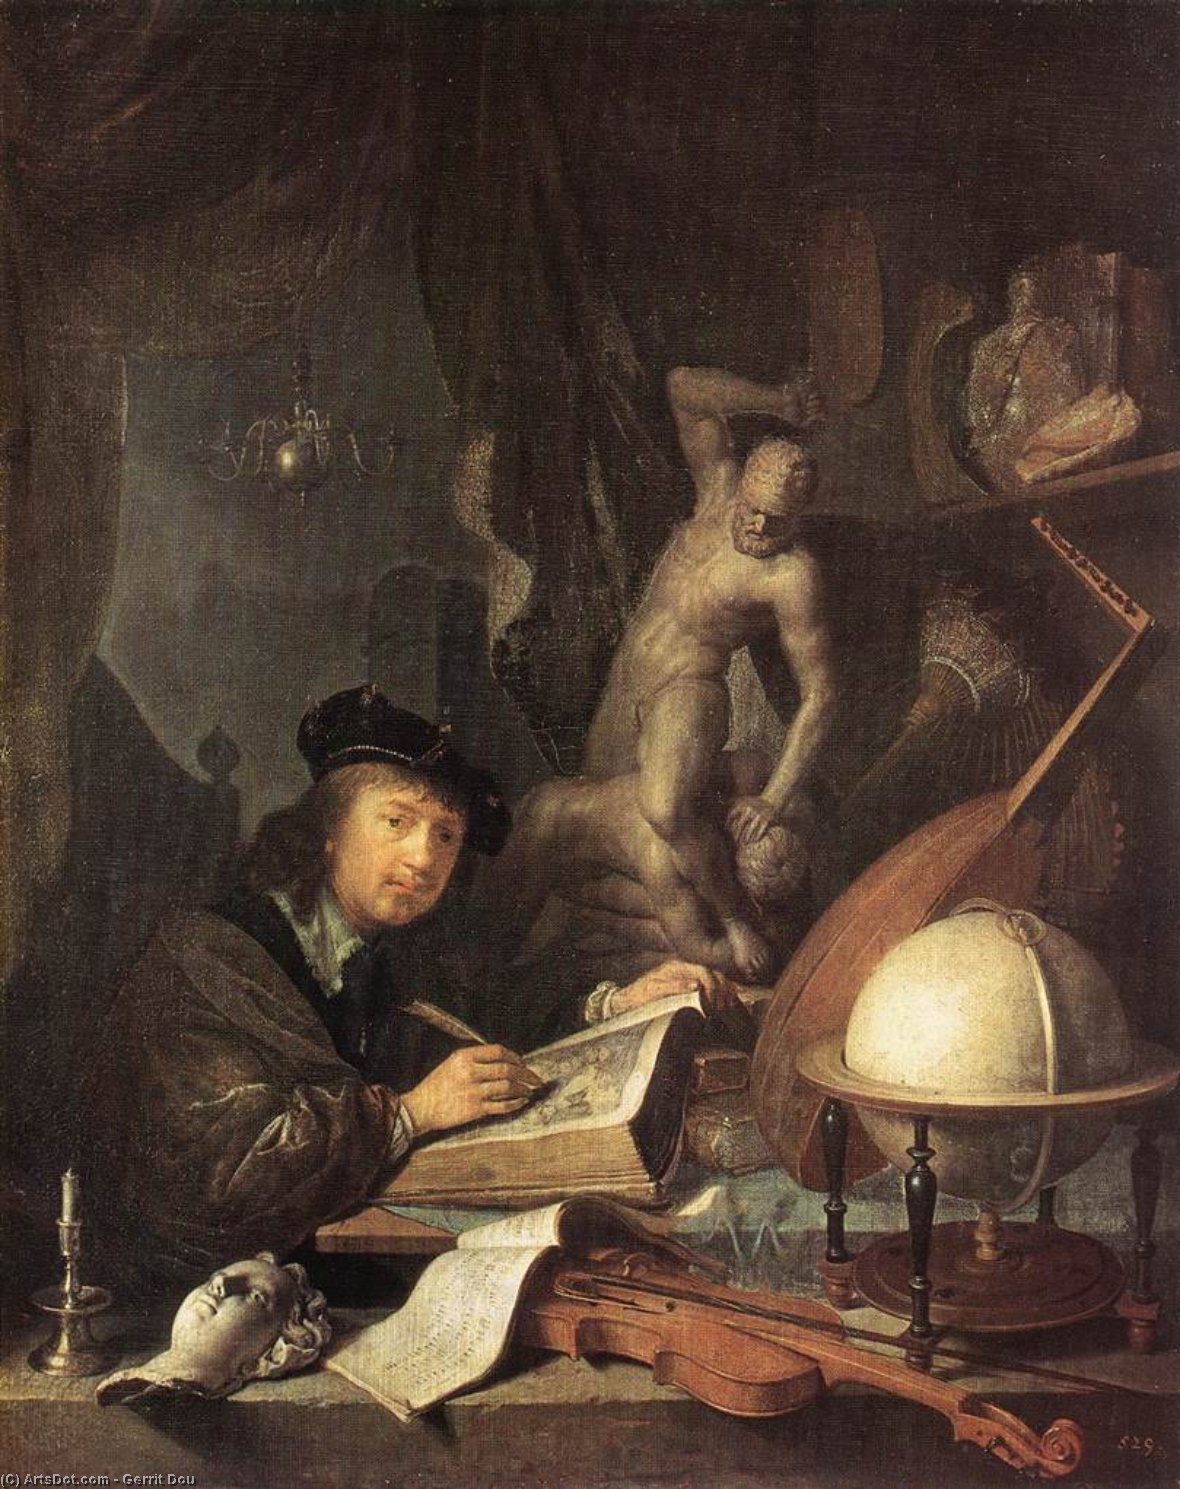 Painter in his Studio, Oil by Gerrit (Gérard) Dou (1613-1675, Netherlands)